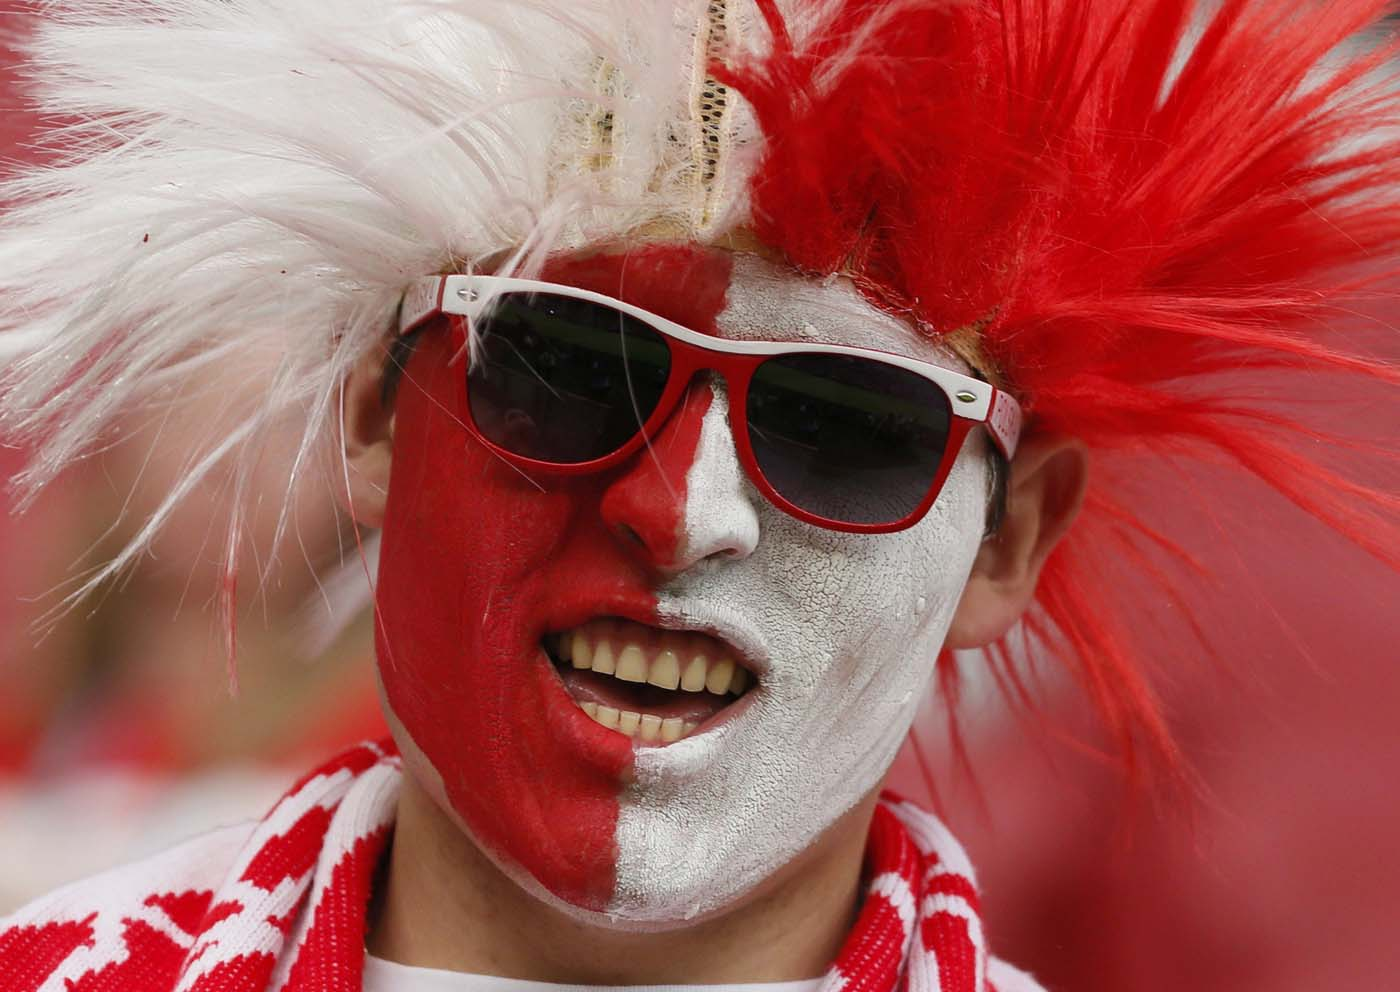 A Poland soccer fan waits for the start of the Group A Euro 2012 soccer match between Poland and Russia at the National stadium in Warsaw June 12, 2012. (Pascal Lauener/Reuters)